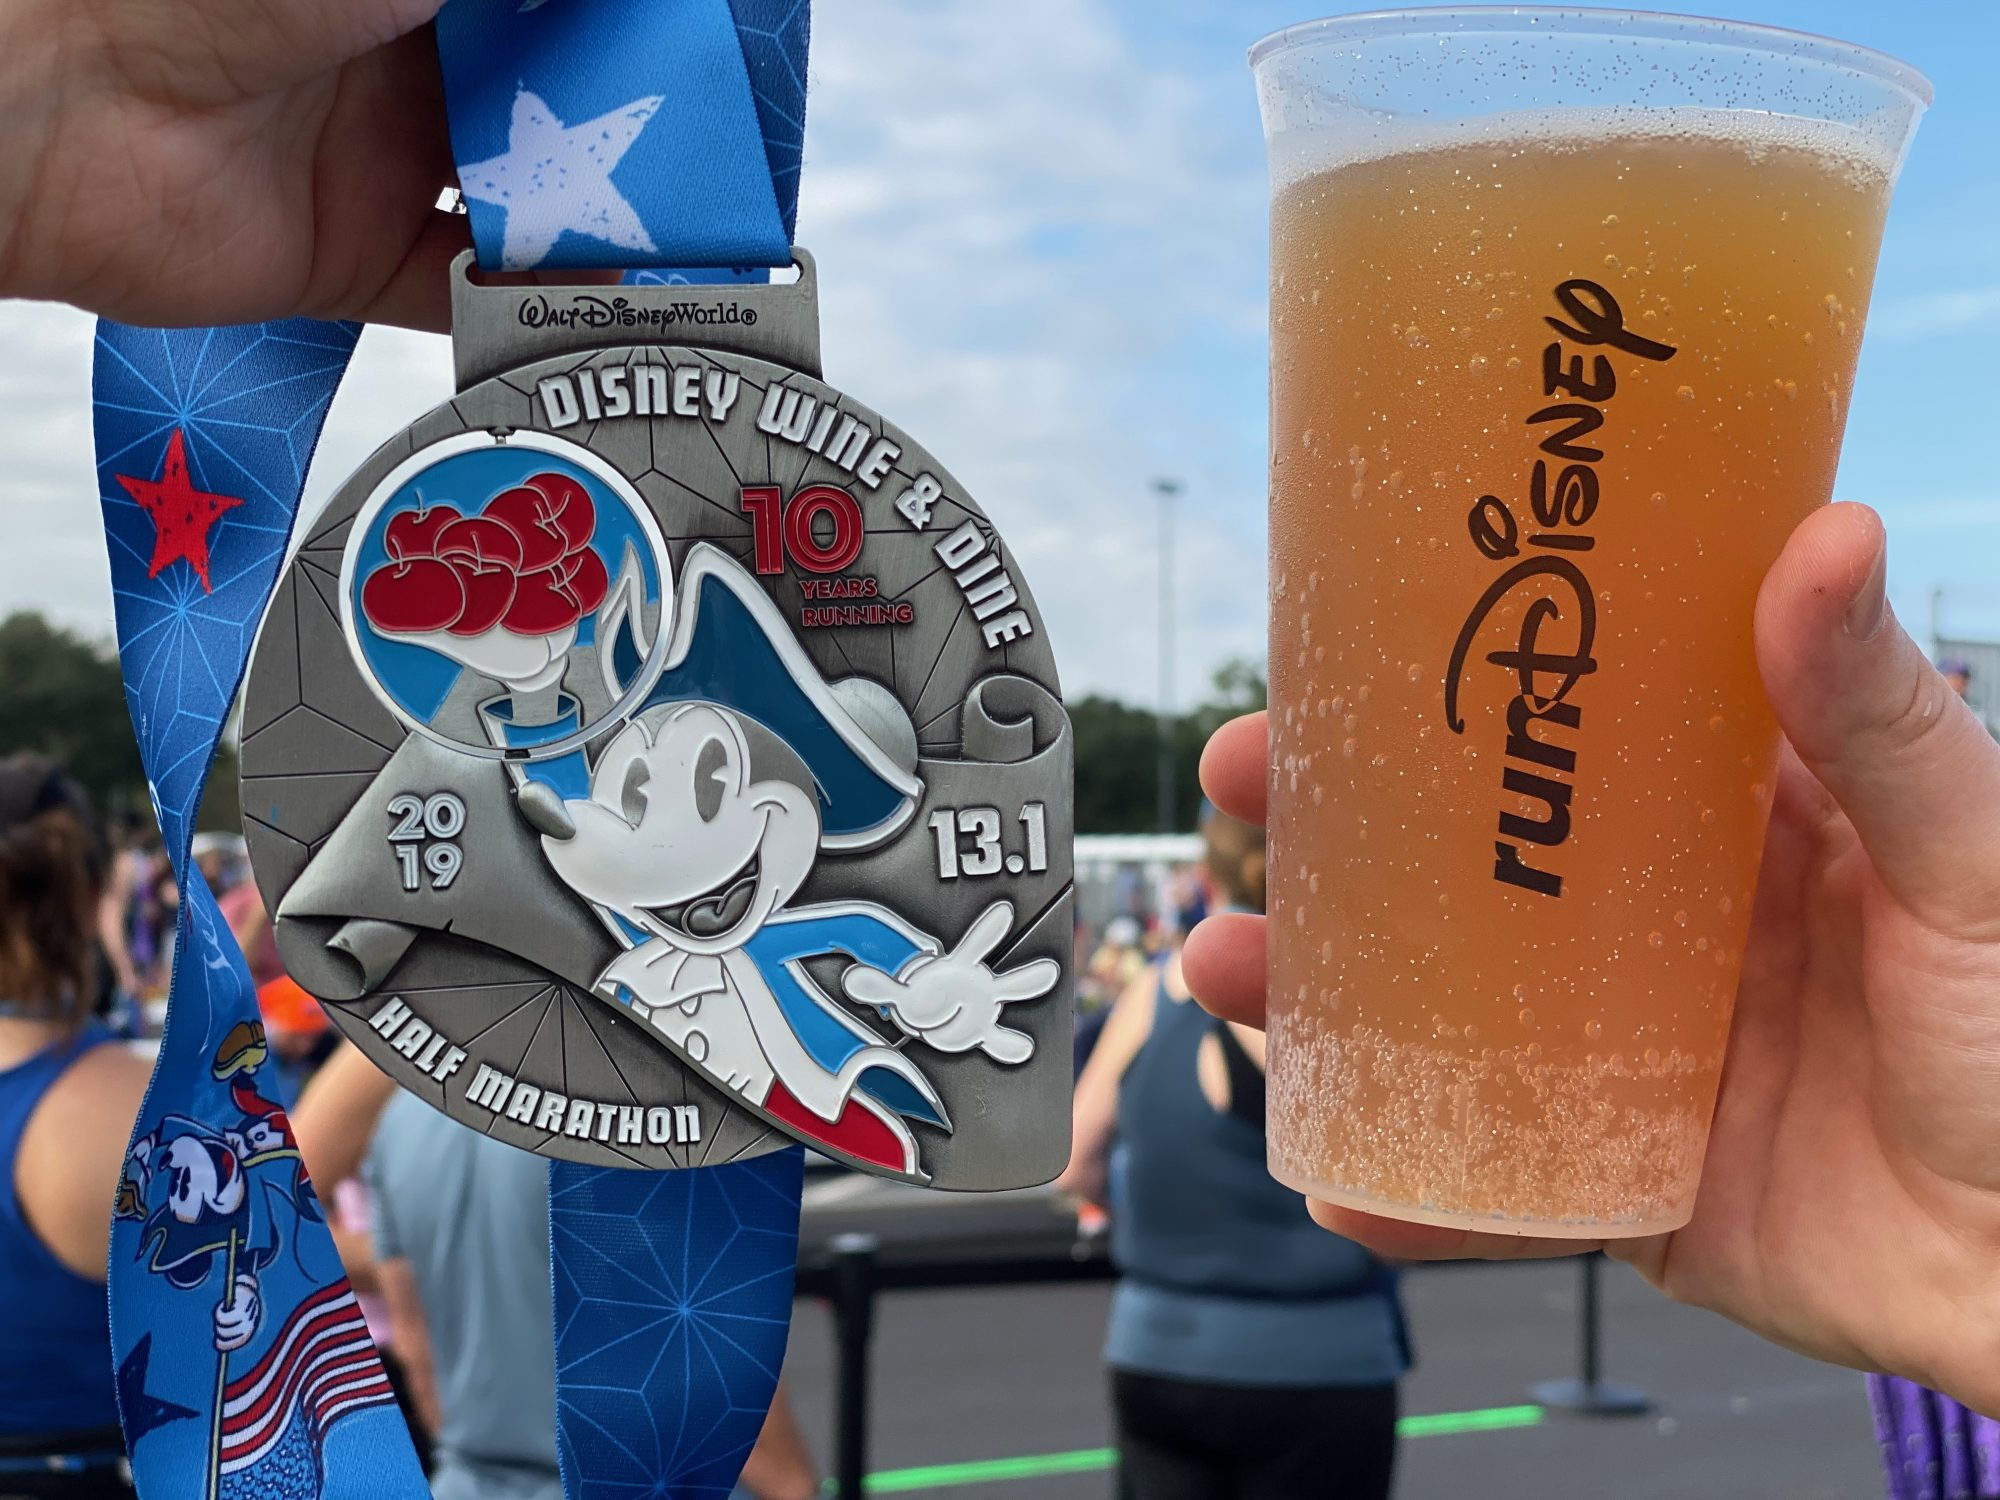 Beer and Medal at Family Reunion Area_photo by Brooke Geiger McDonald